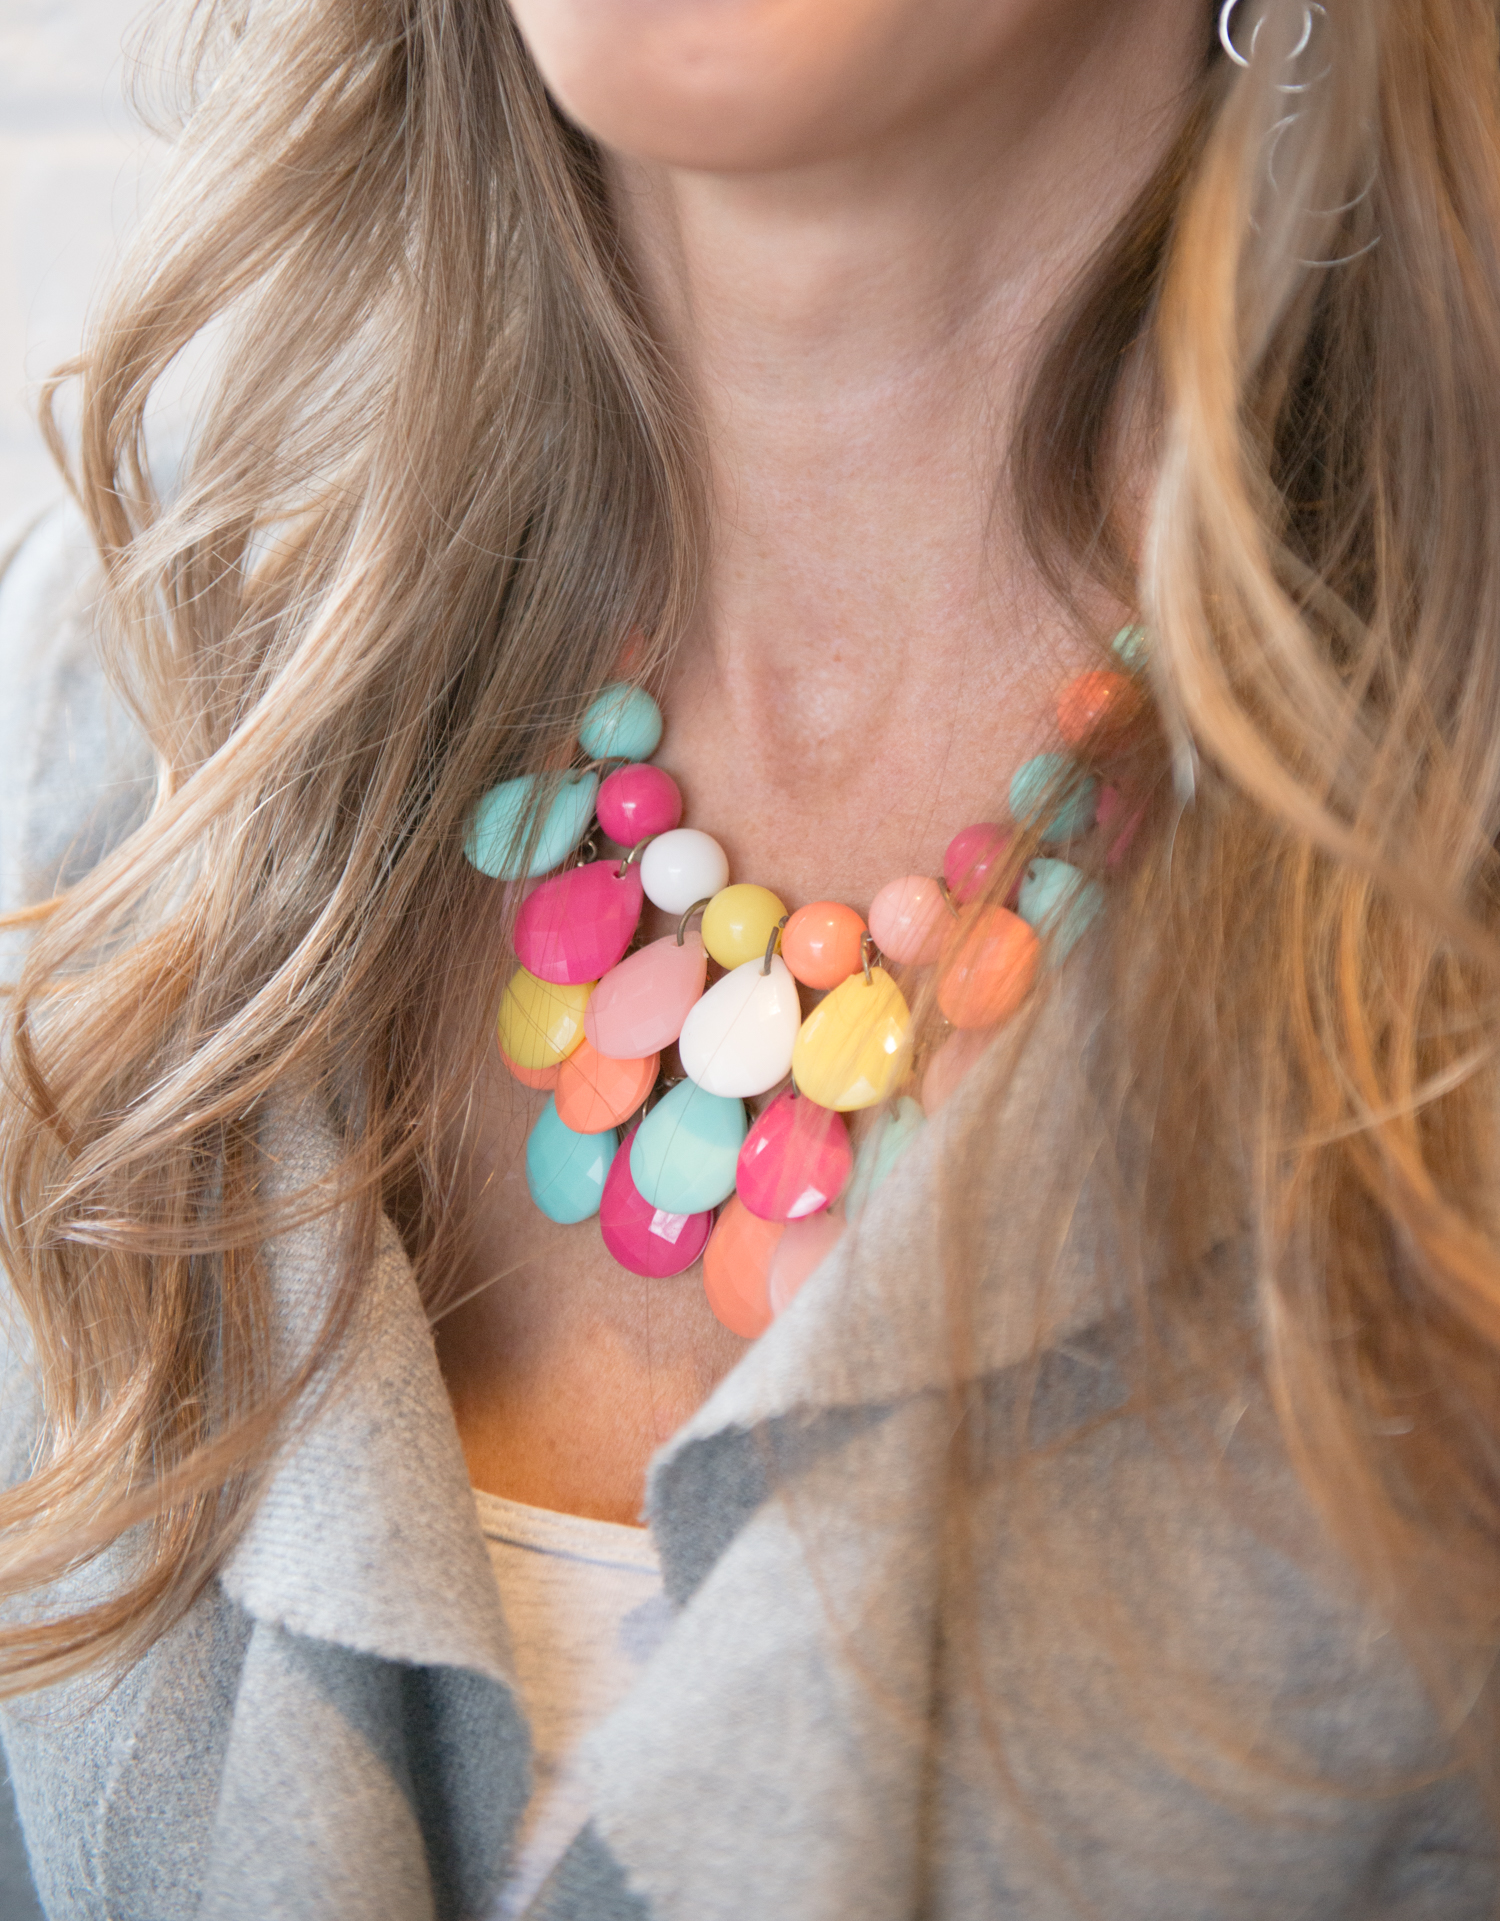 accessories-necklace-style-women-lisa-villella-photography